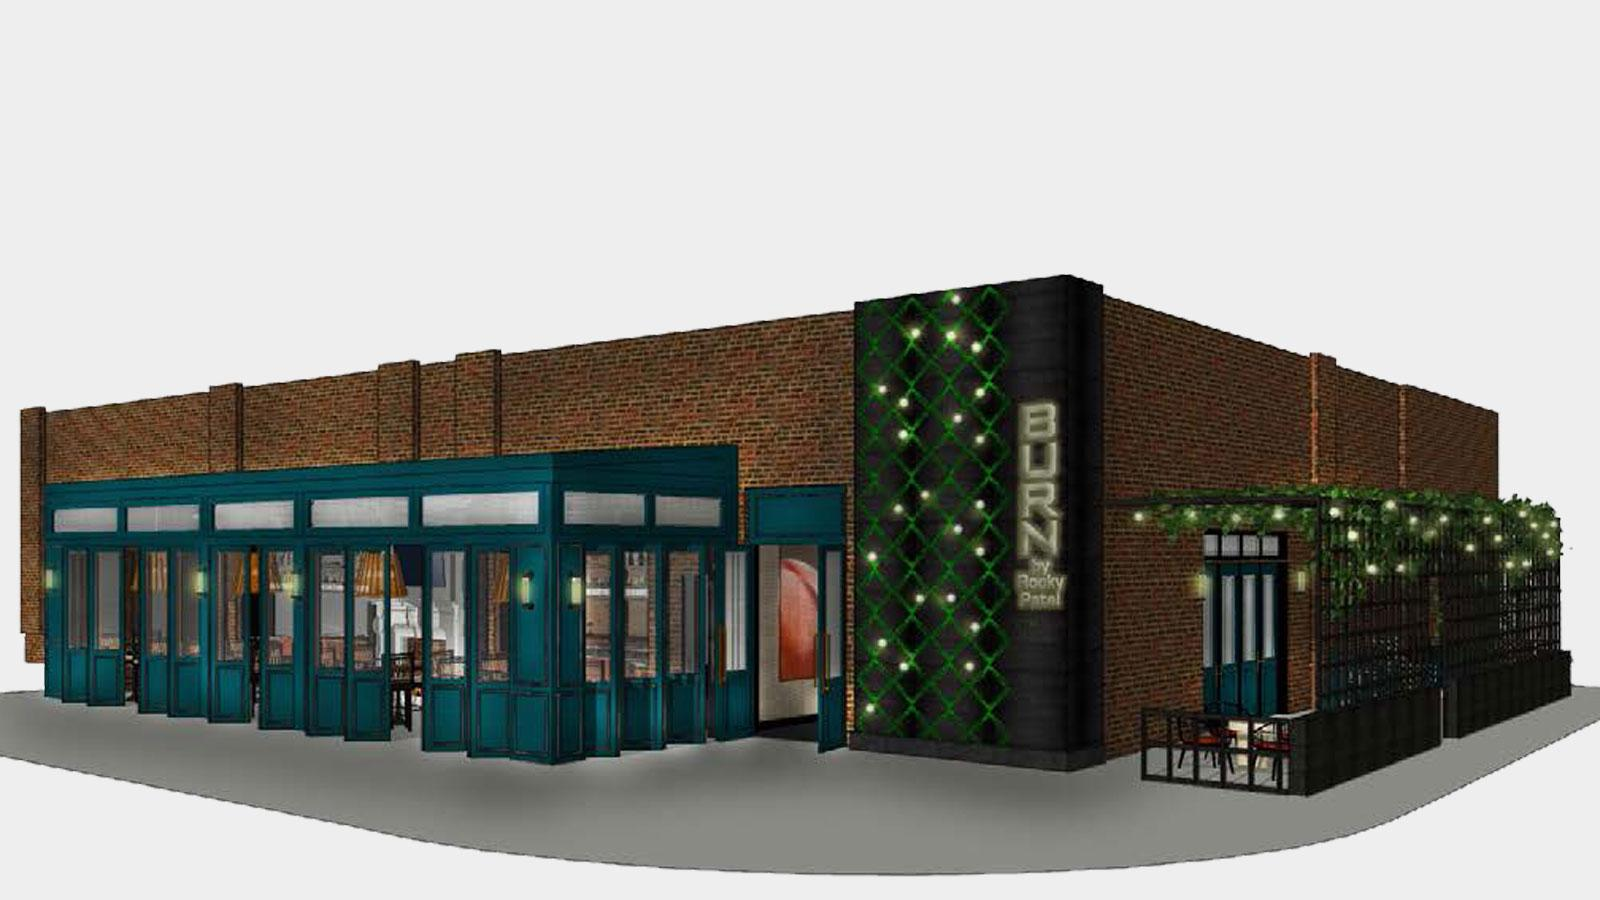 A rendering of the upcoming Atlanta location's exterior.